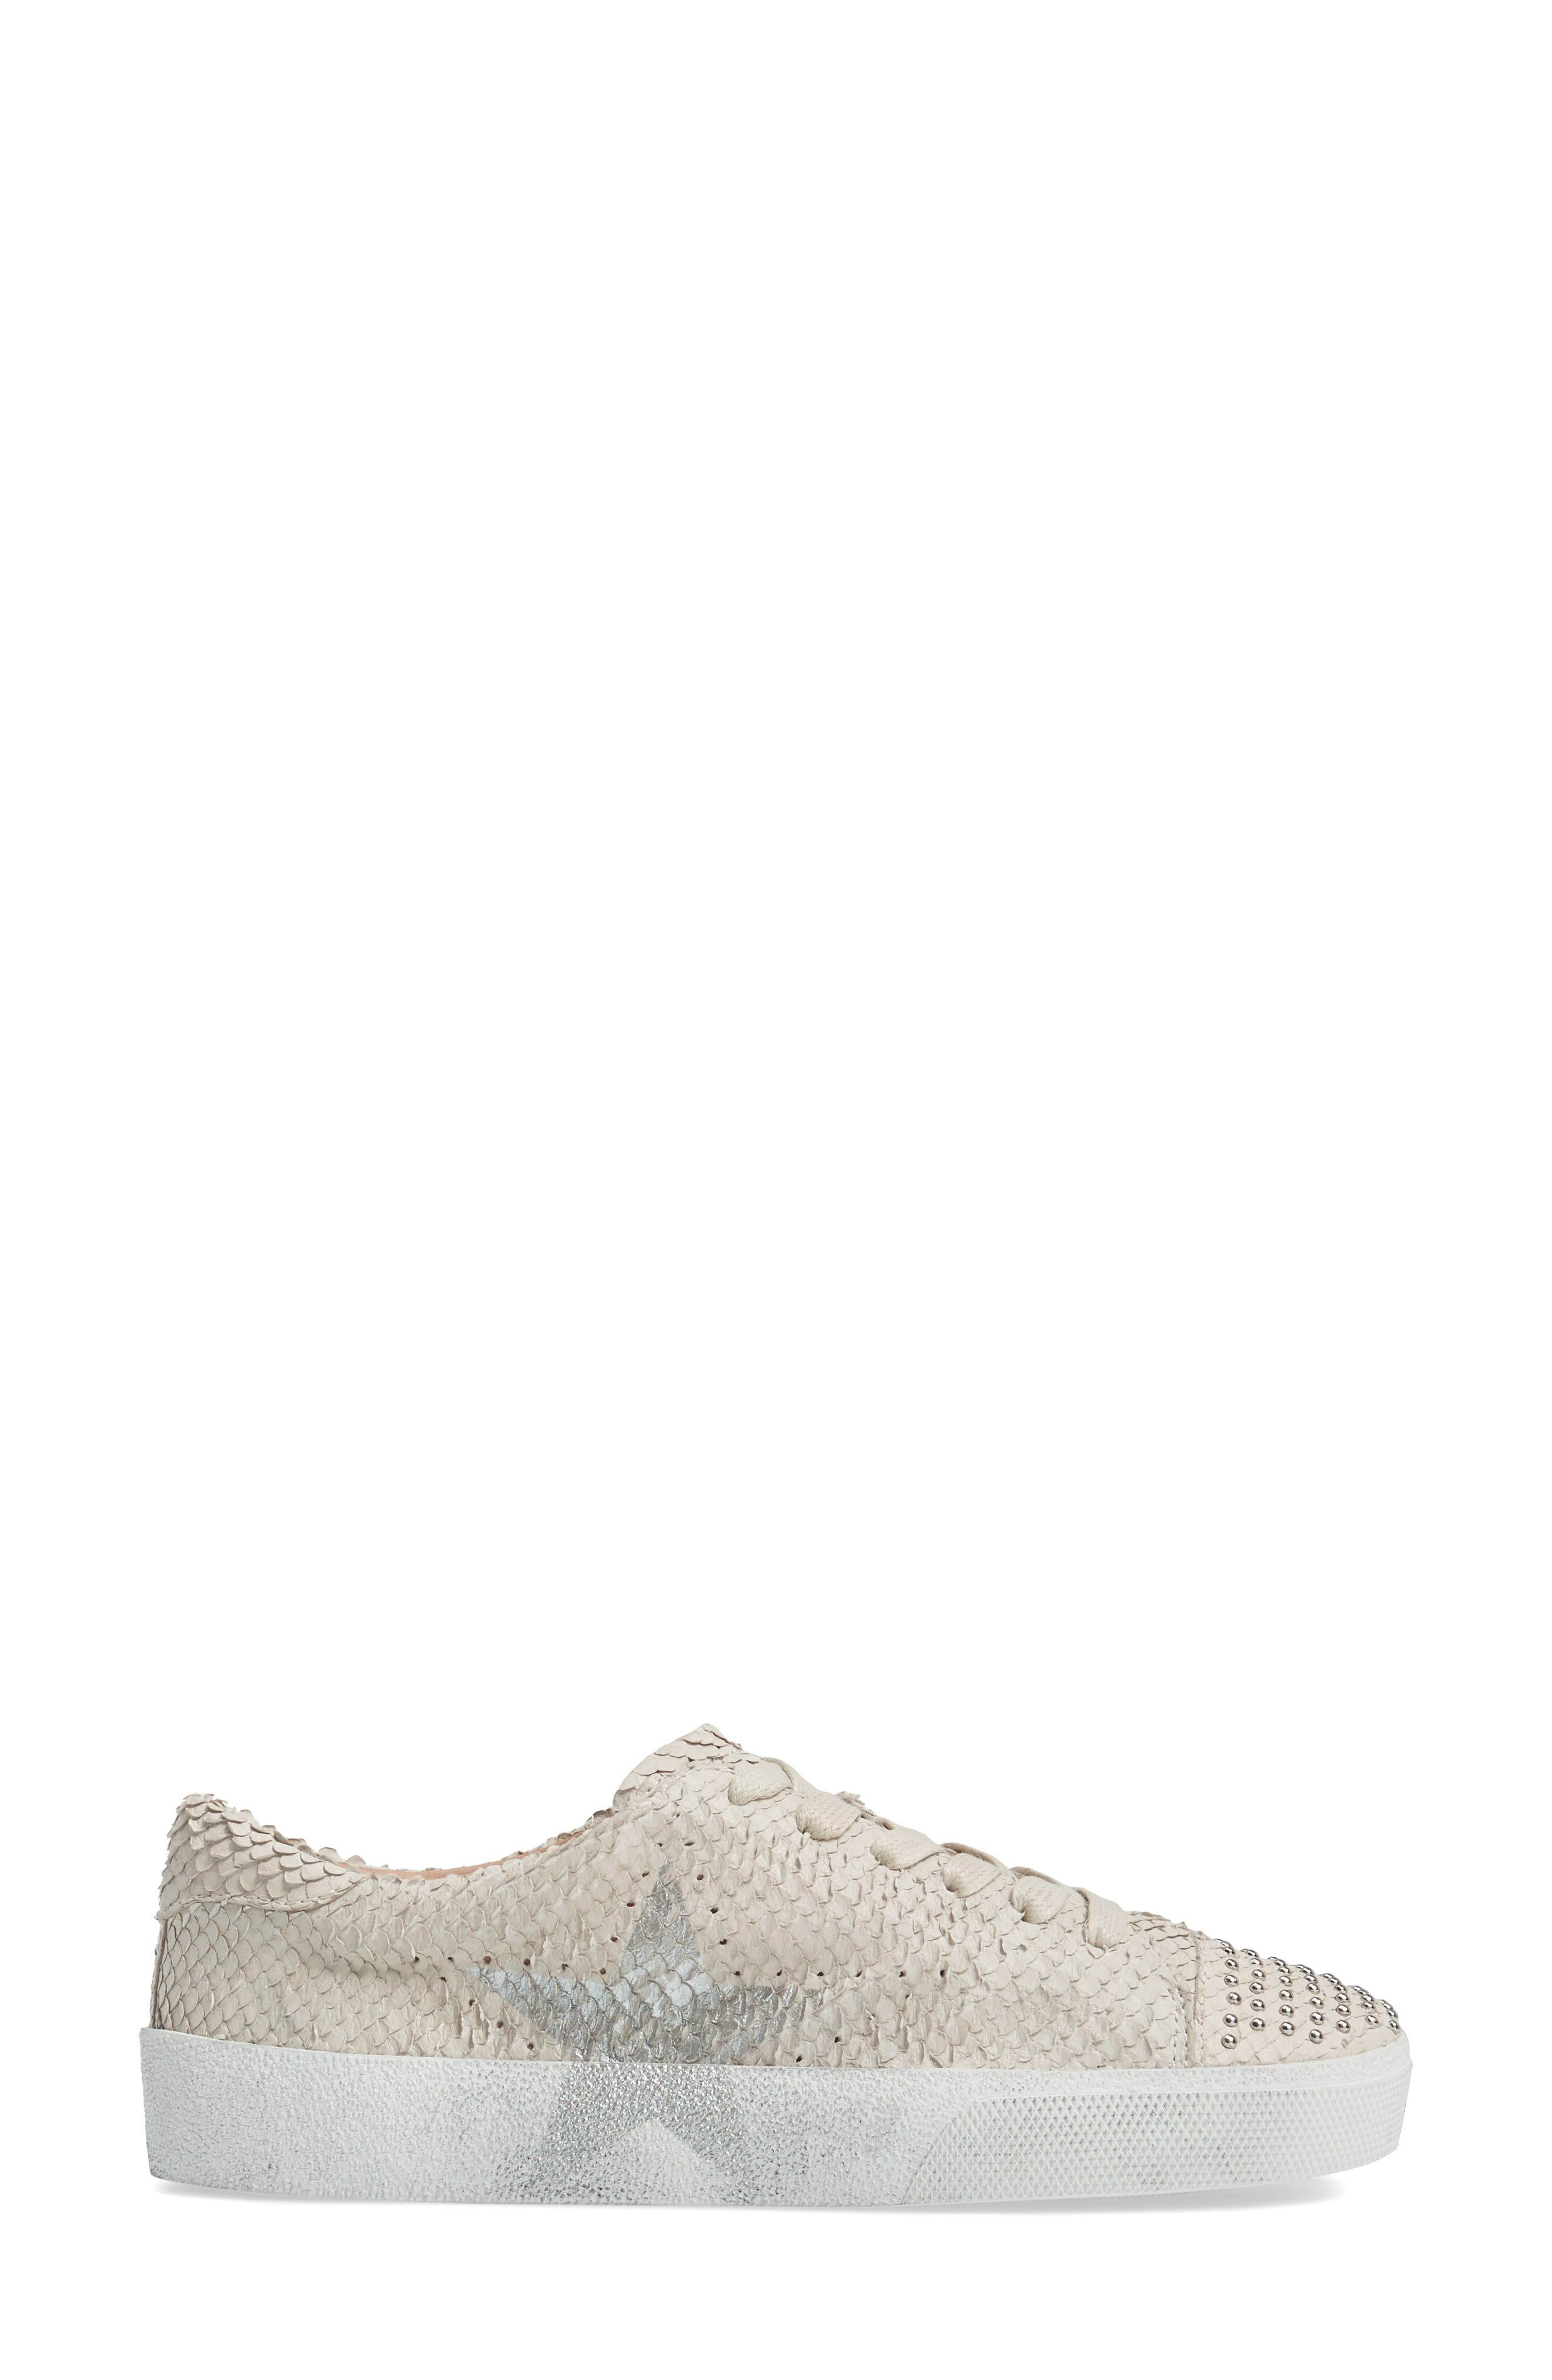 Catcall Studded Sneaker,                             Alternate thumbnail 3, color,                             Vodka/ Silver